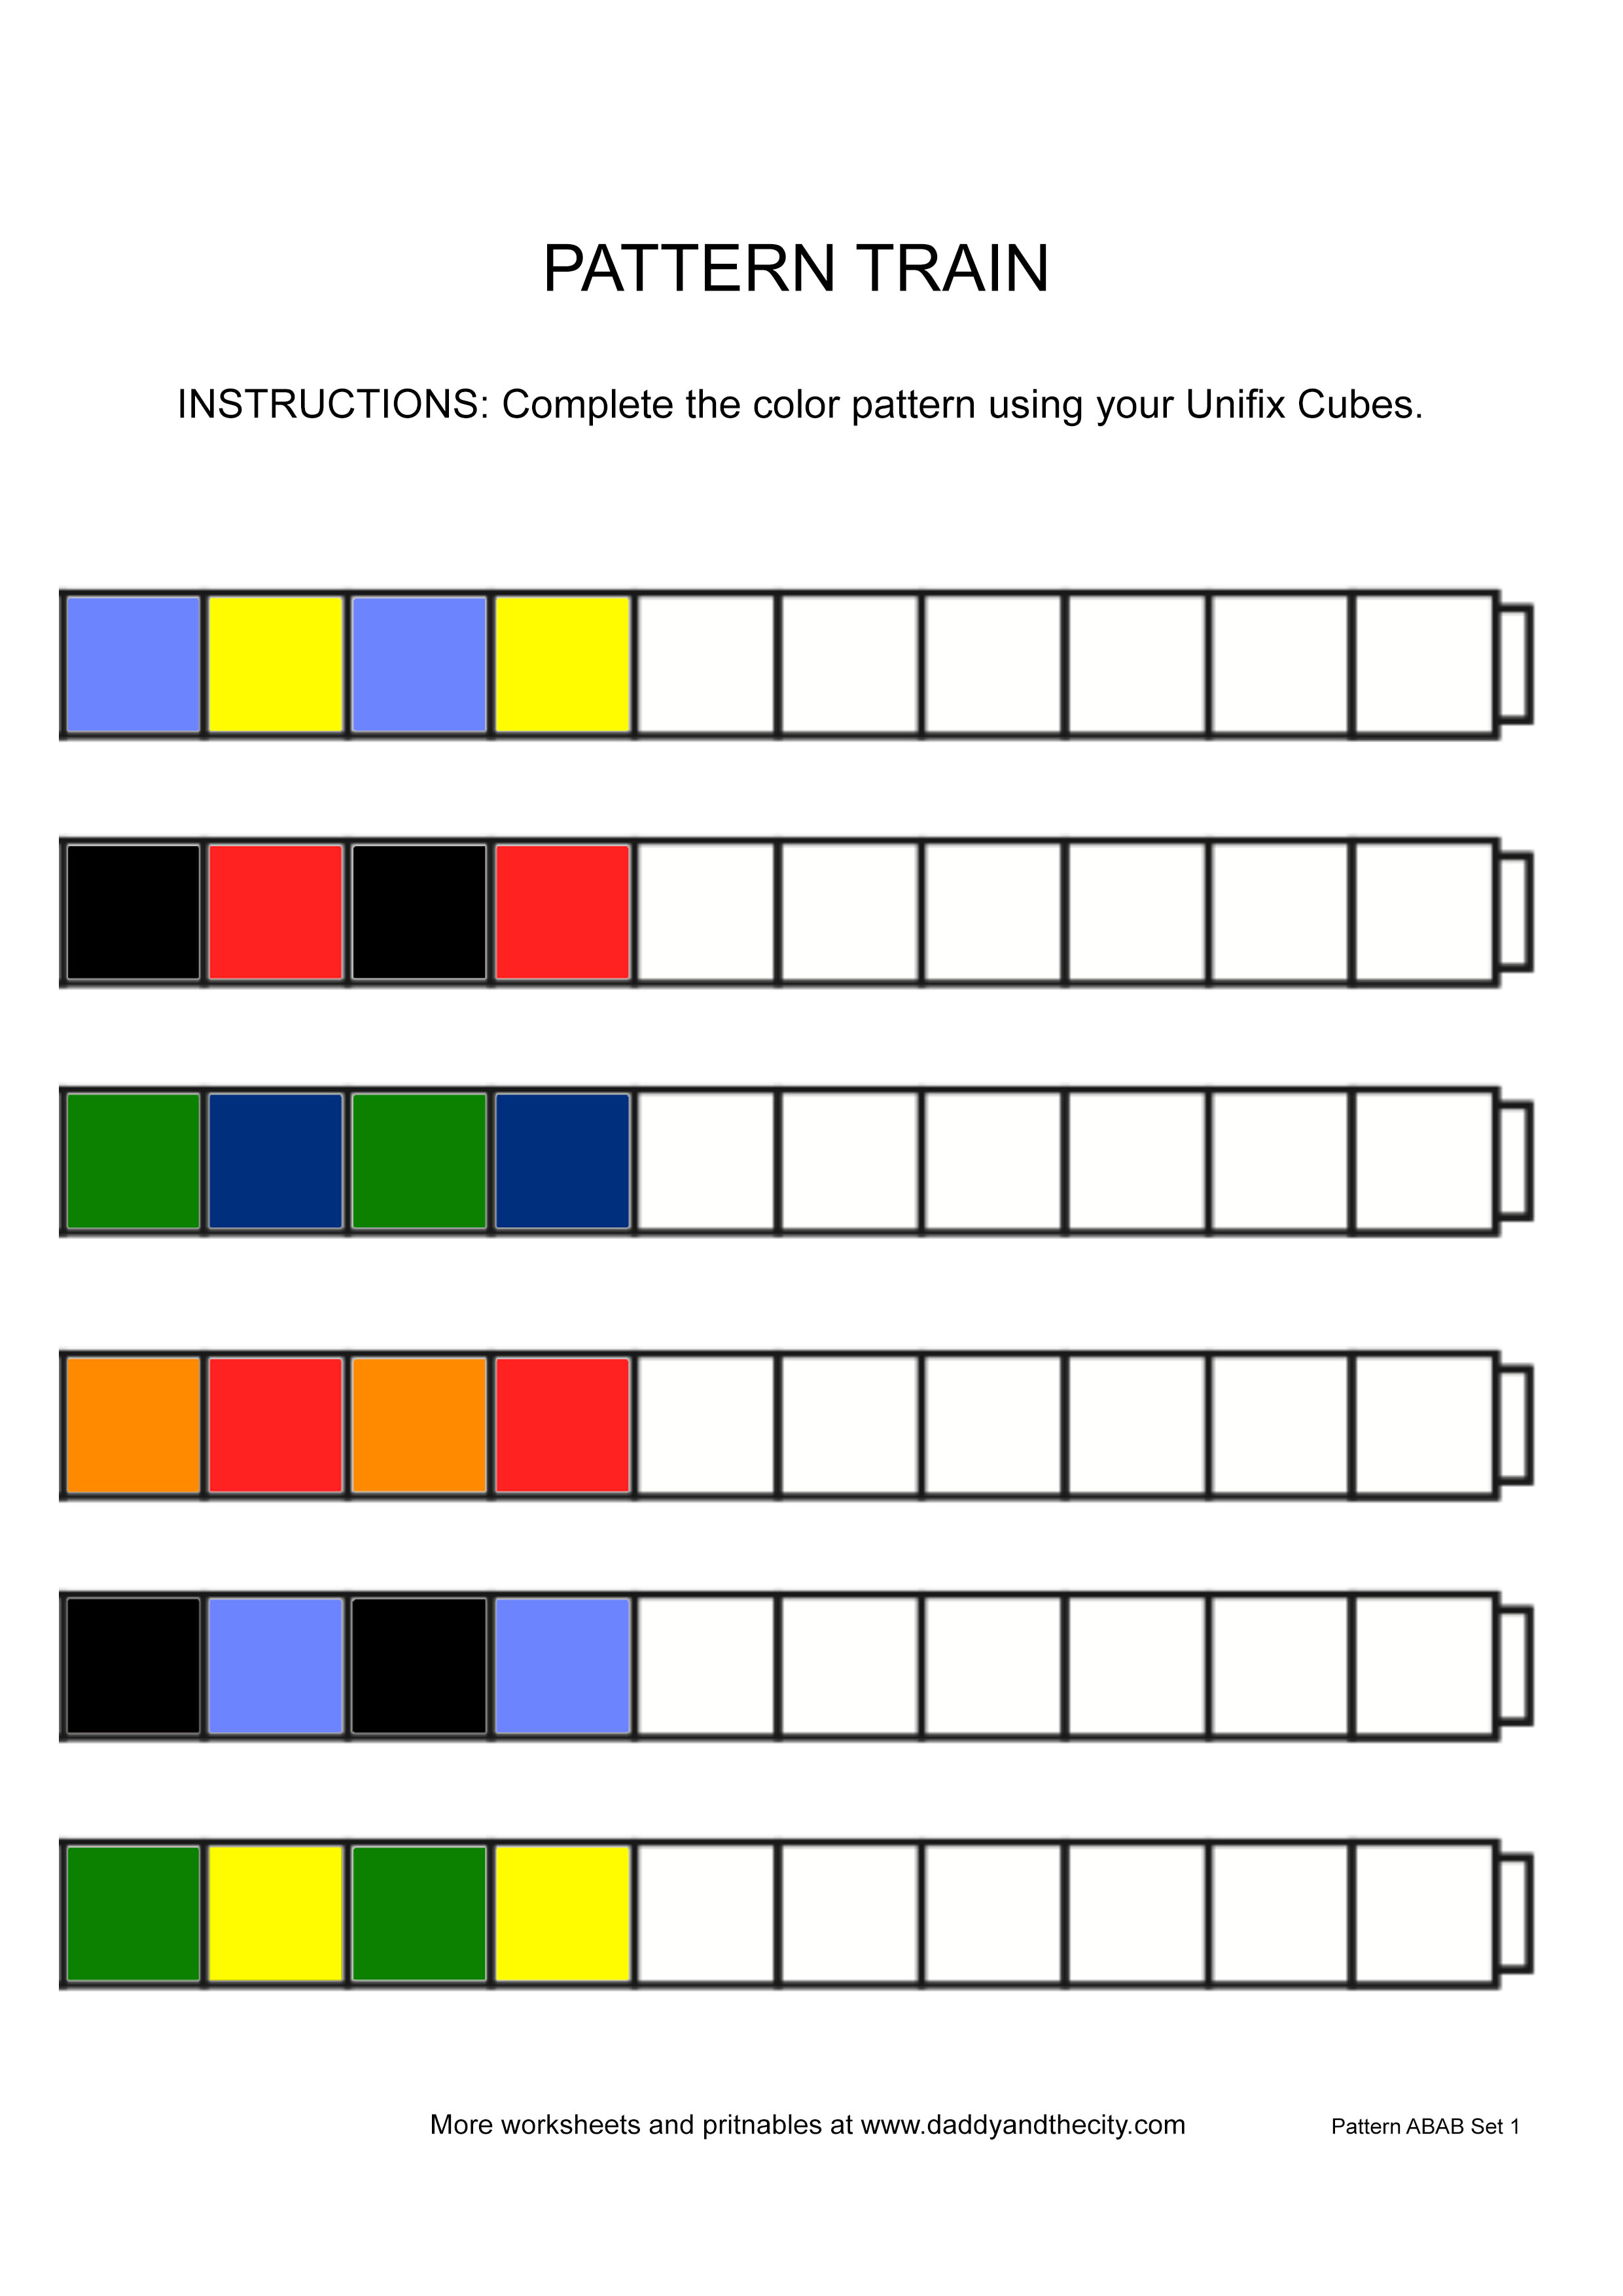 Pattern Printables For Unifix Cubes Daddy And The City